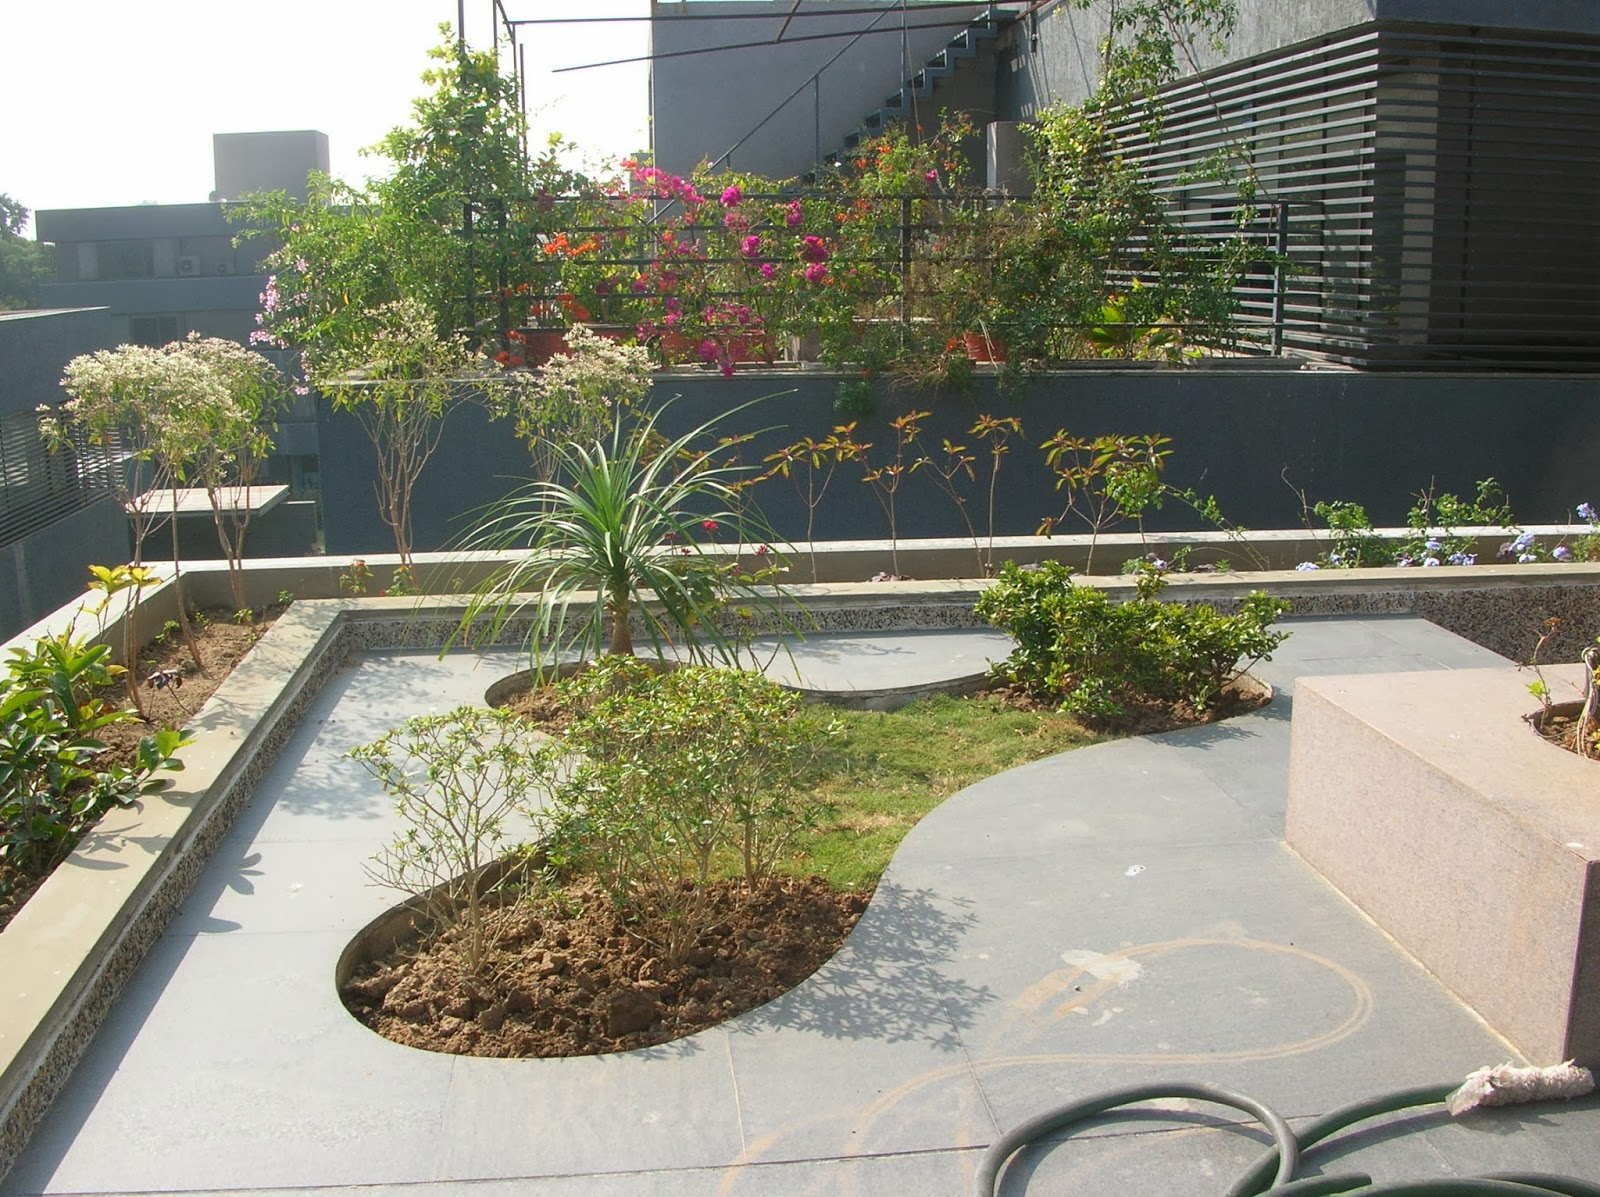 Bonsai trees and plants in ahmedabad for sale garden for Terrace garden